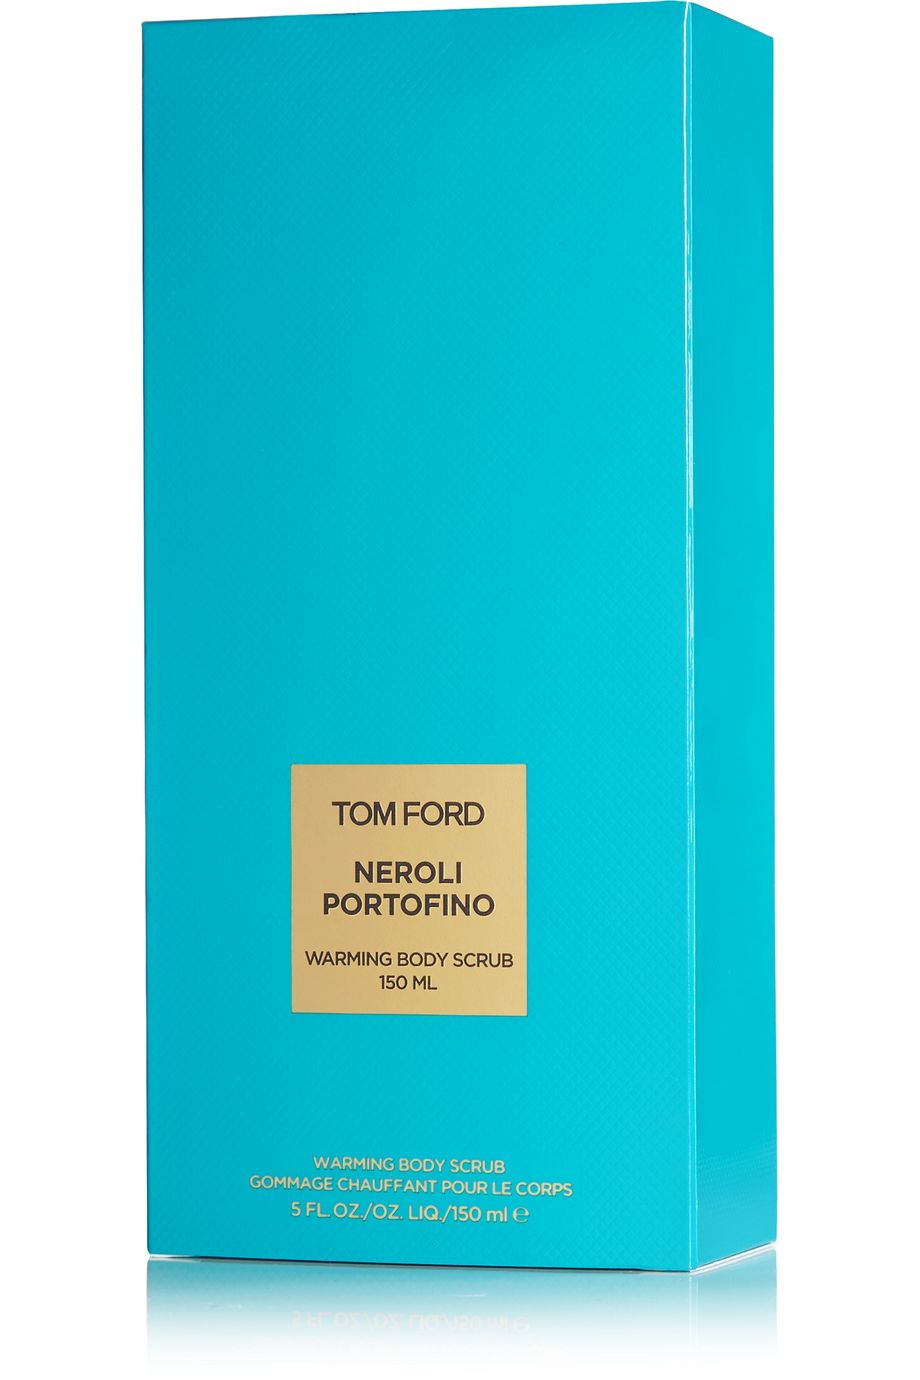 TOM FORD BEAUTY Neroli Portofino Warming Body Scrub, 150ml